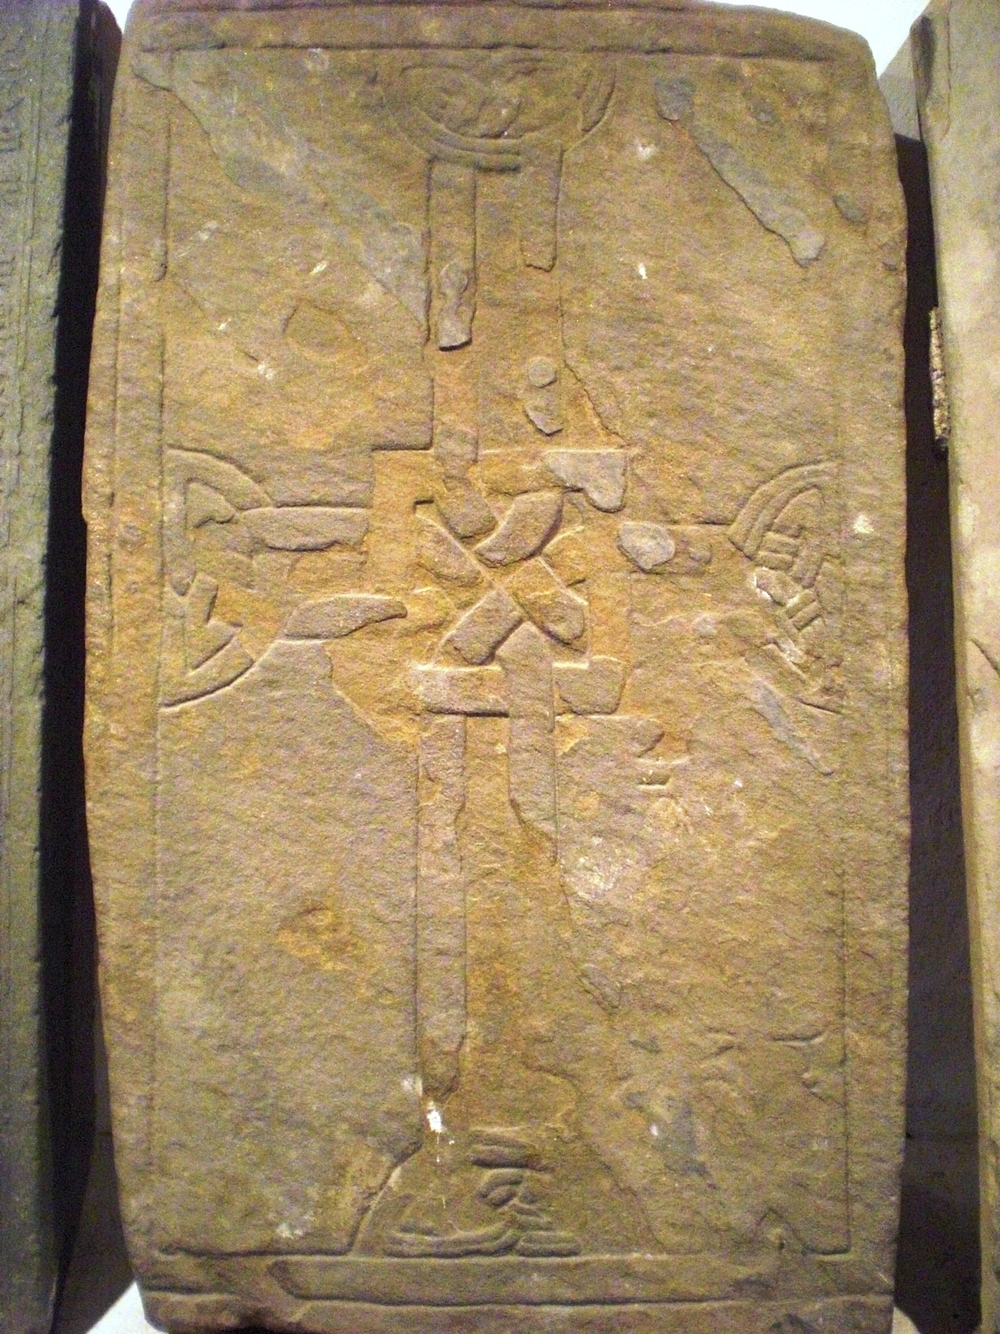 Gravestone from Iona